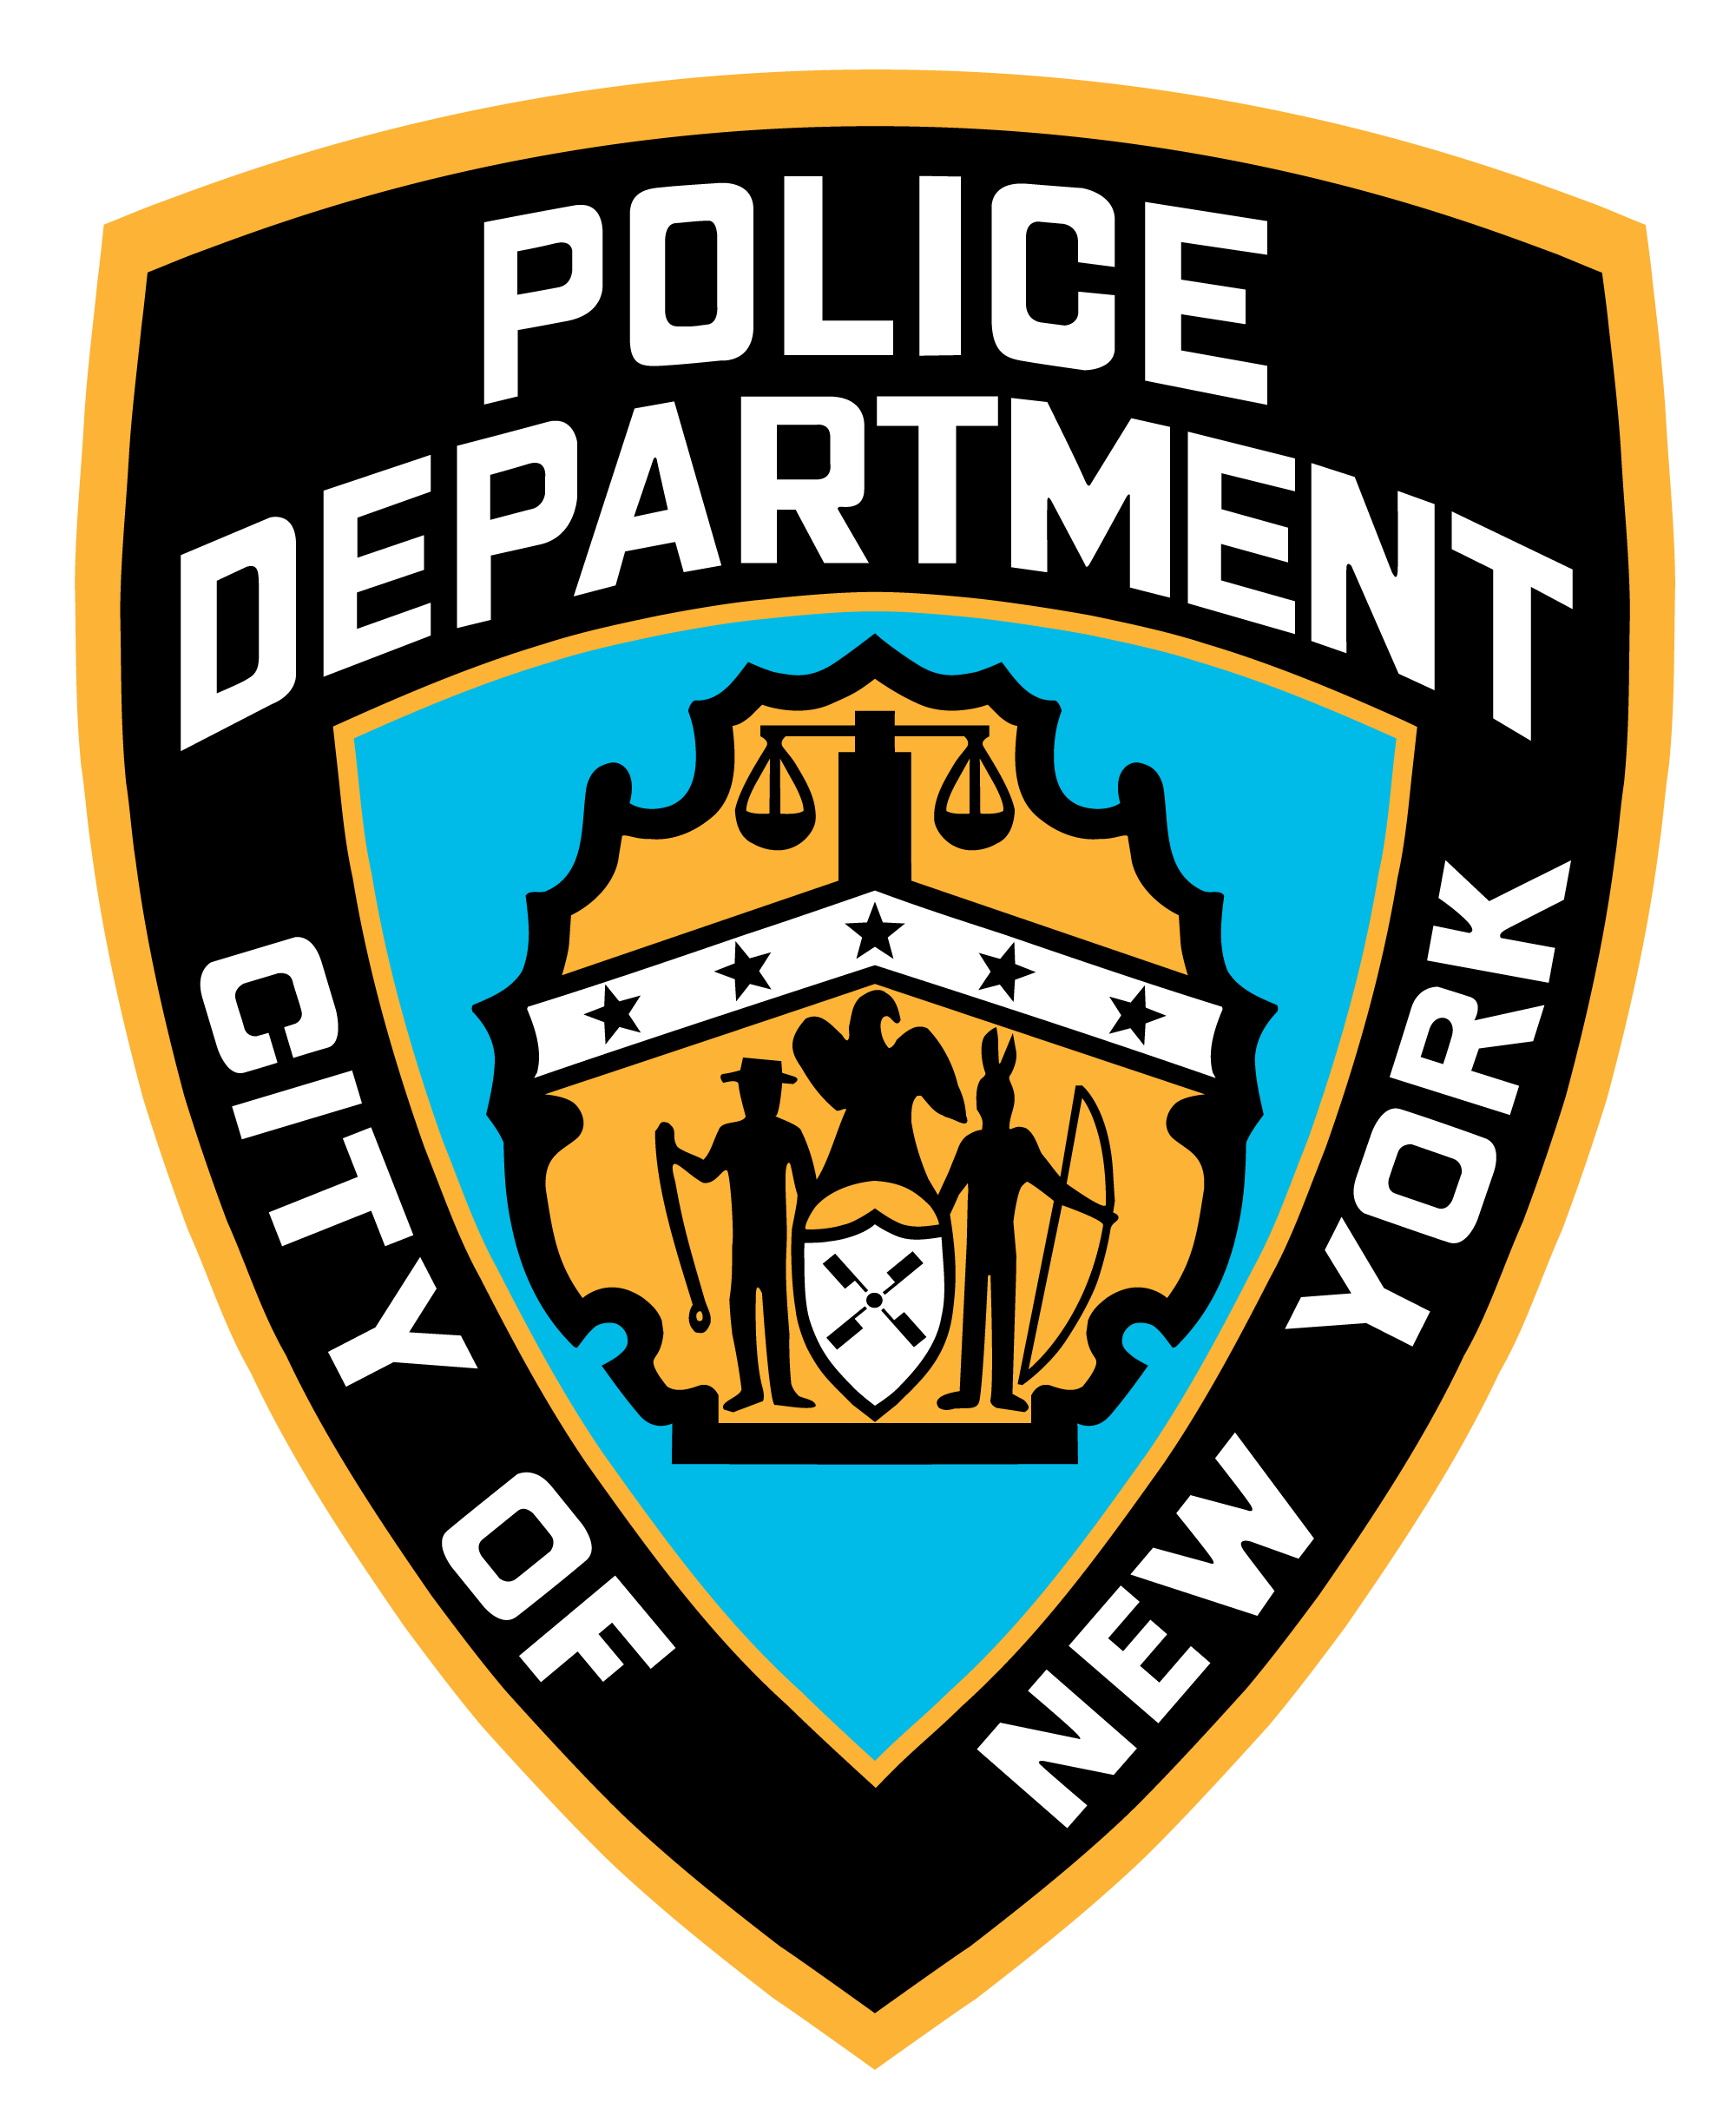 http://lav.io/wp-content/uploads/2013/11/nypd.png